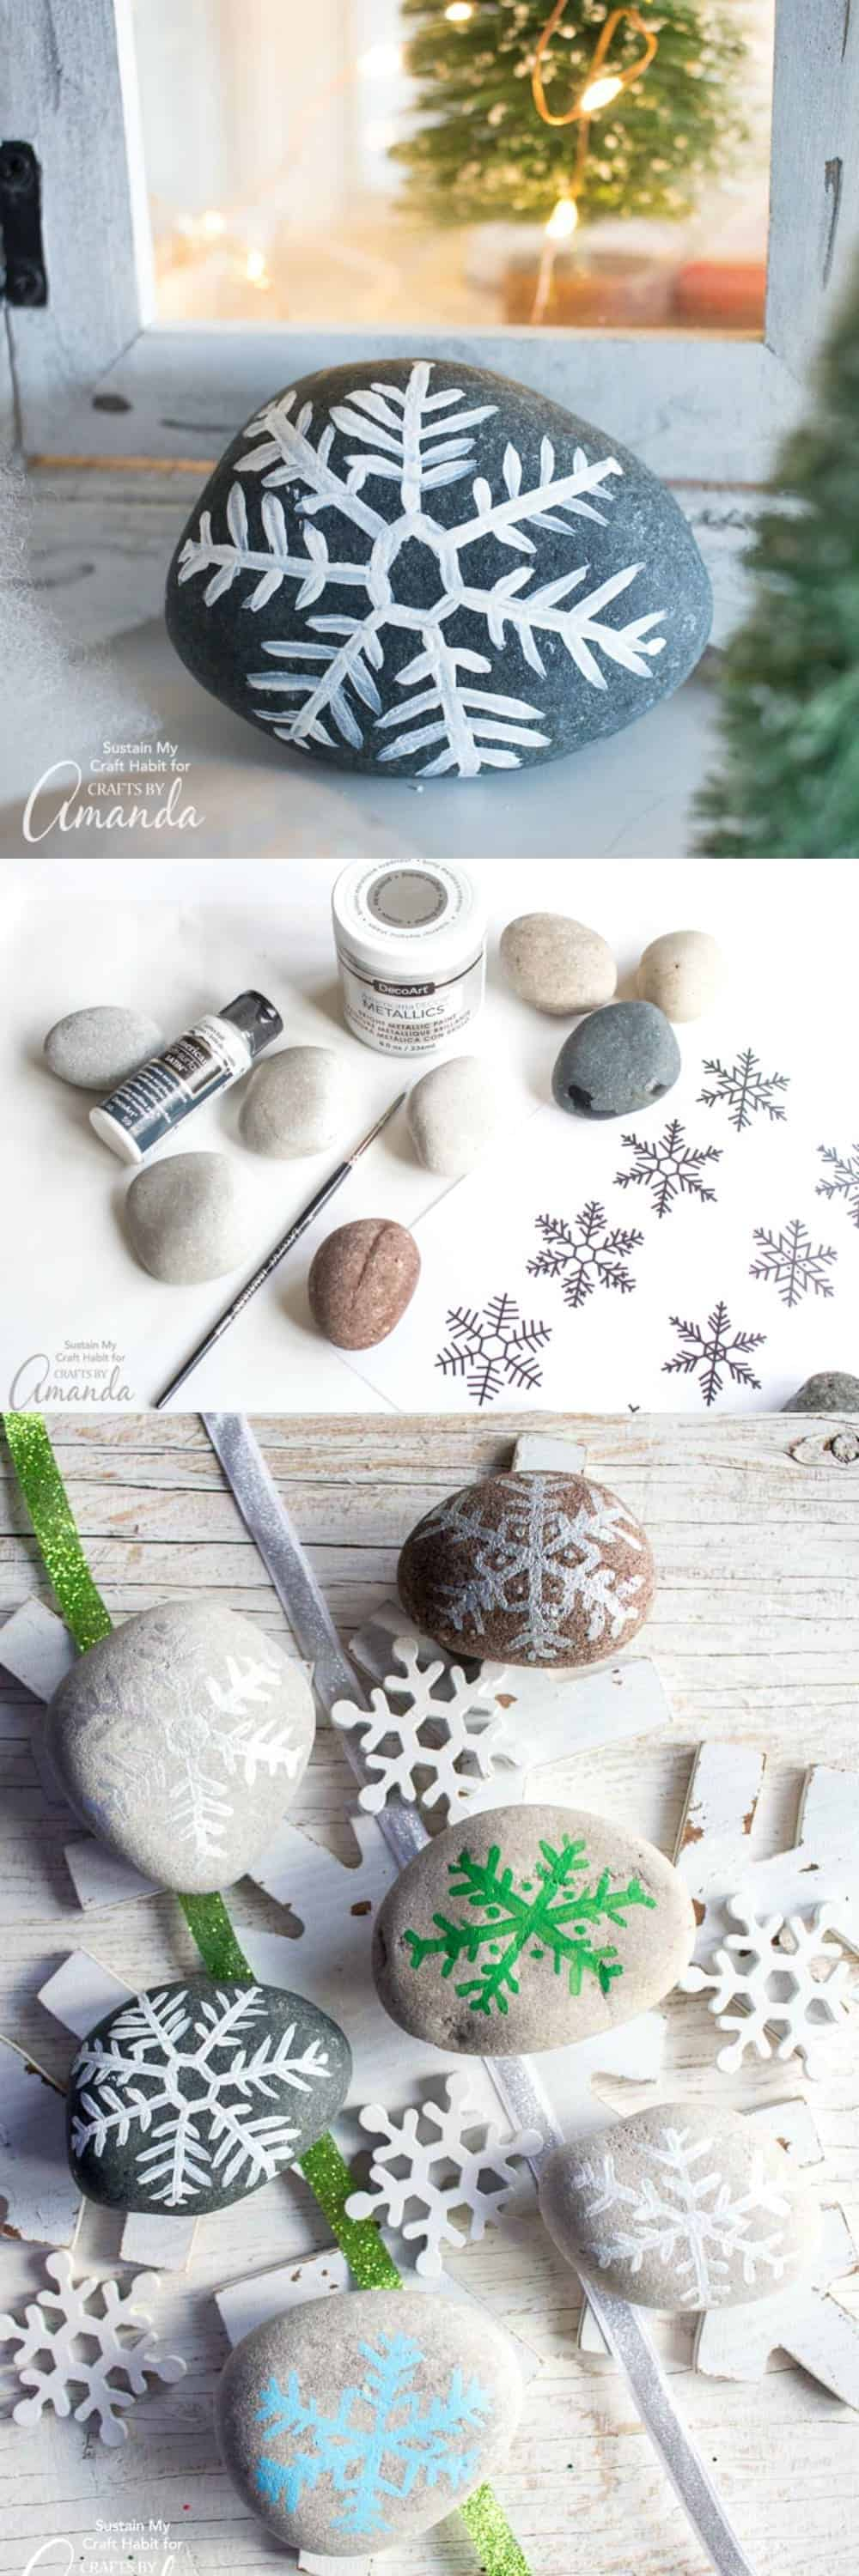 Painted Rock Snowflakes: an easy winter craft anyone can do